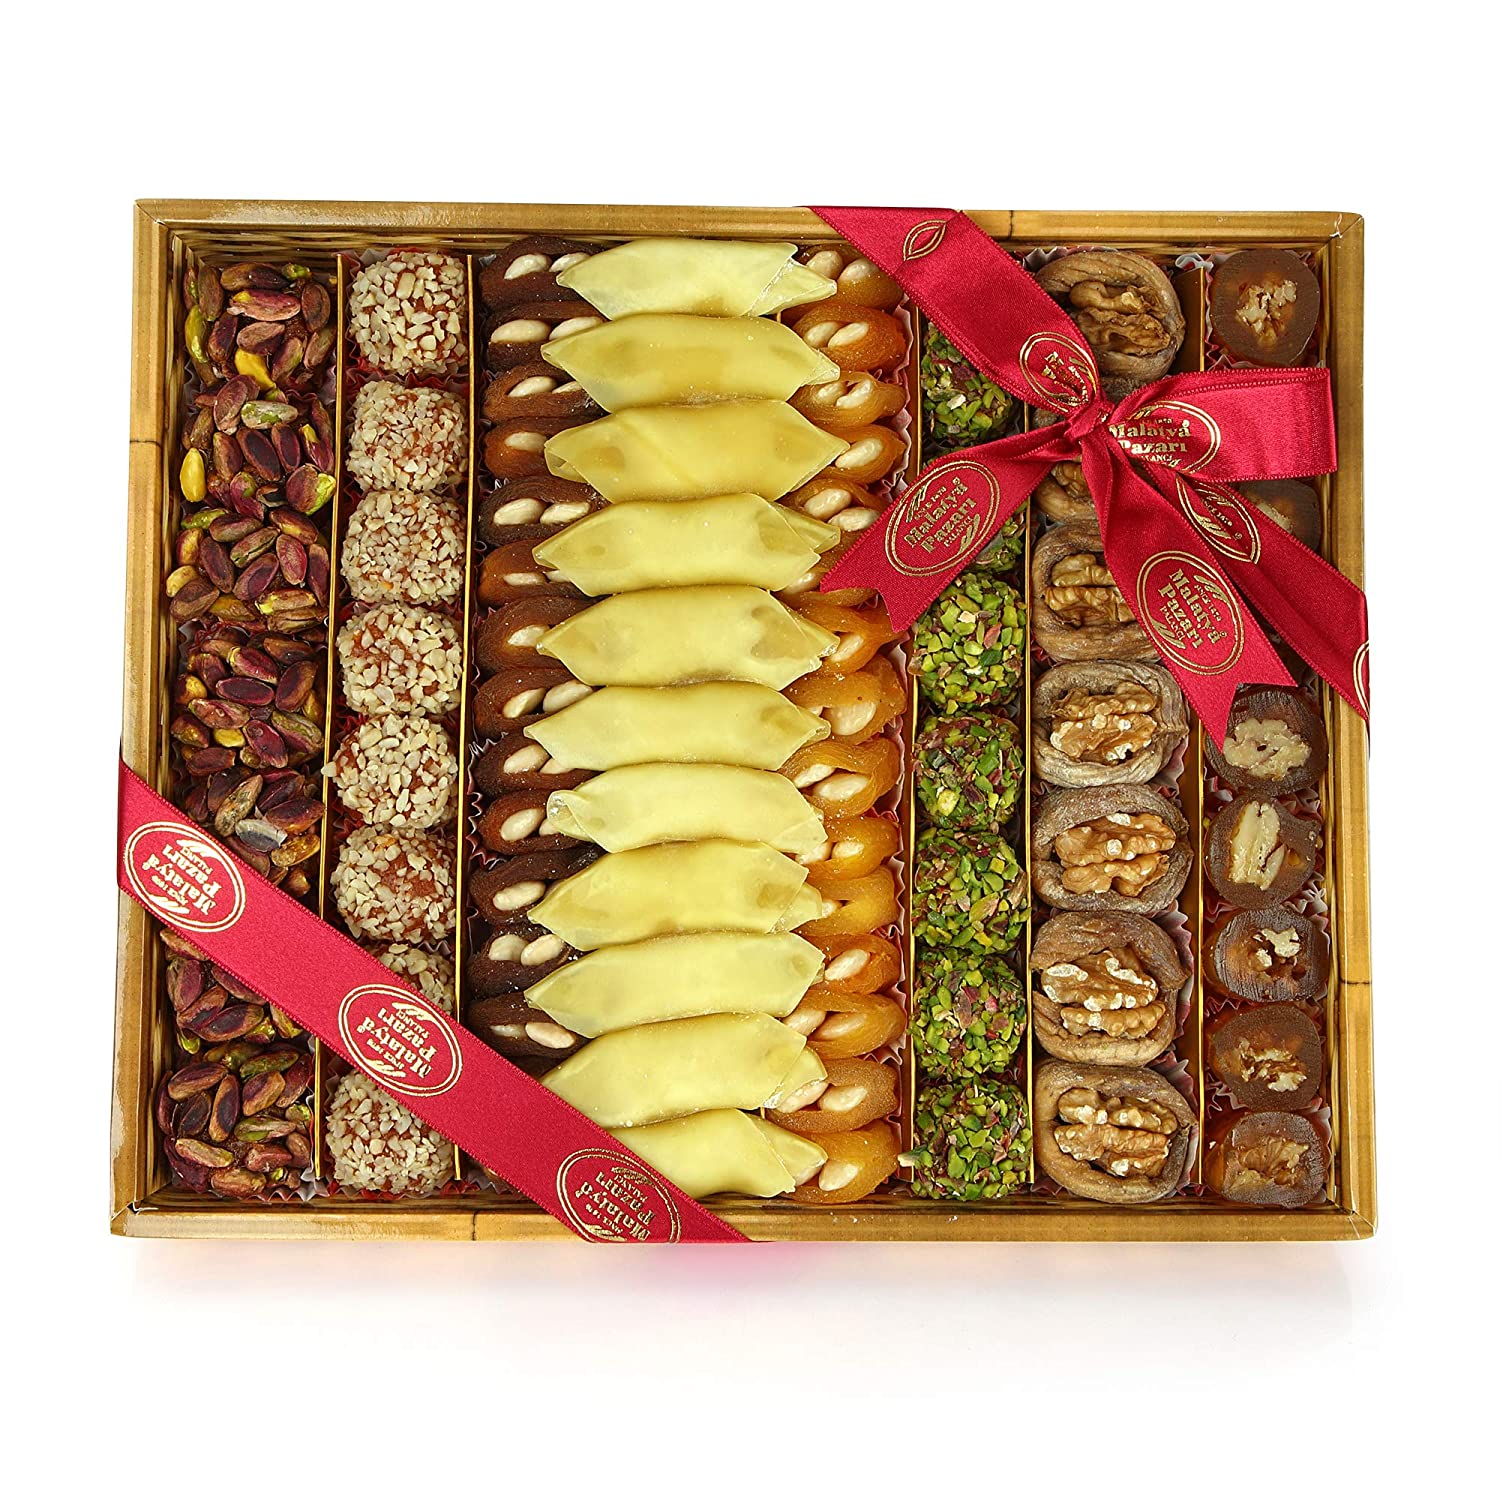 Premium Natural Dried Fruit and Nut Basket 16 Variety of Healthy Gourmet Snack Arrangement For Gift and You (1500 gr/52.9 oz)